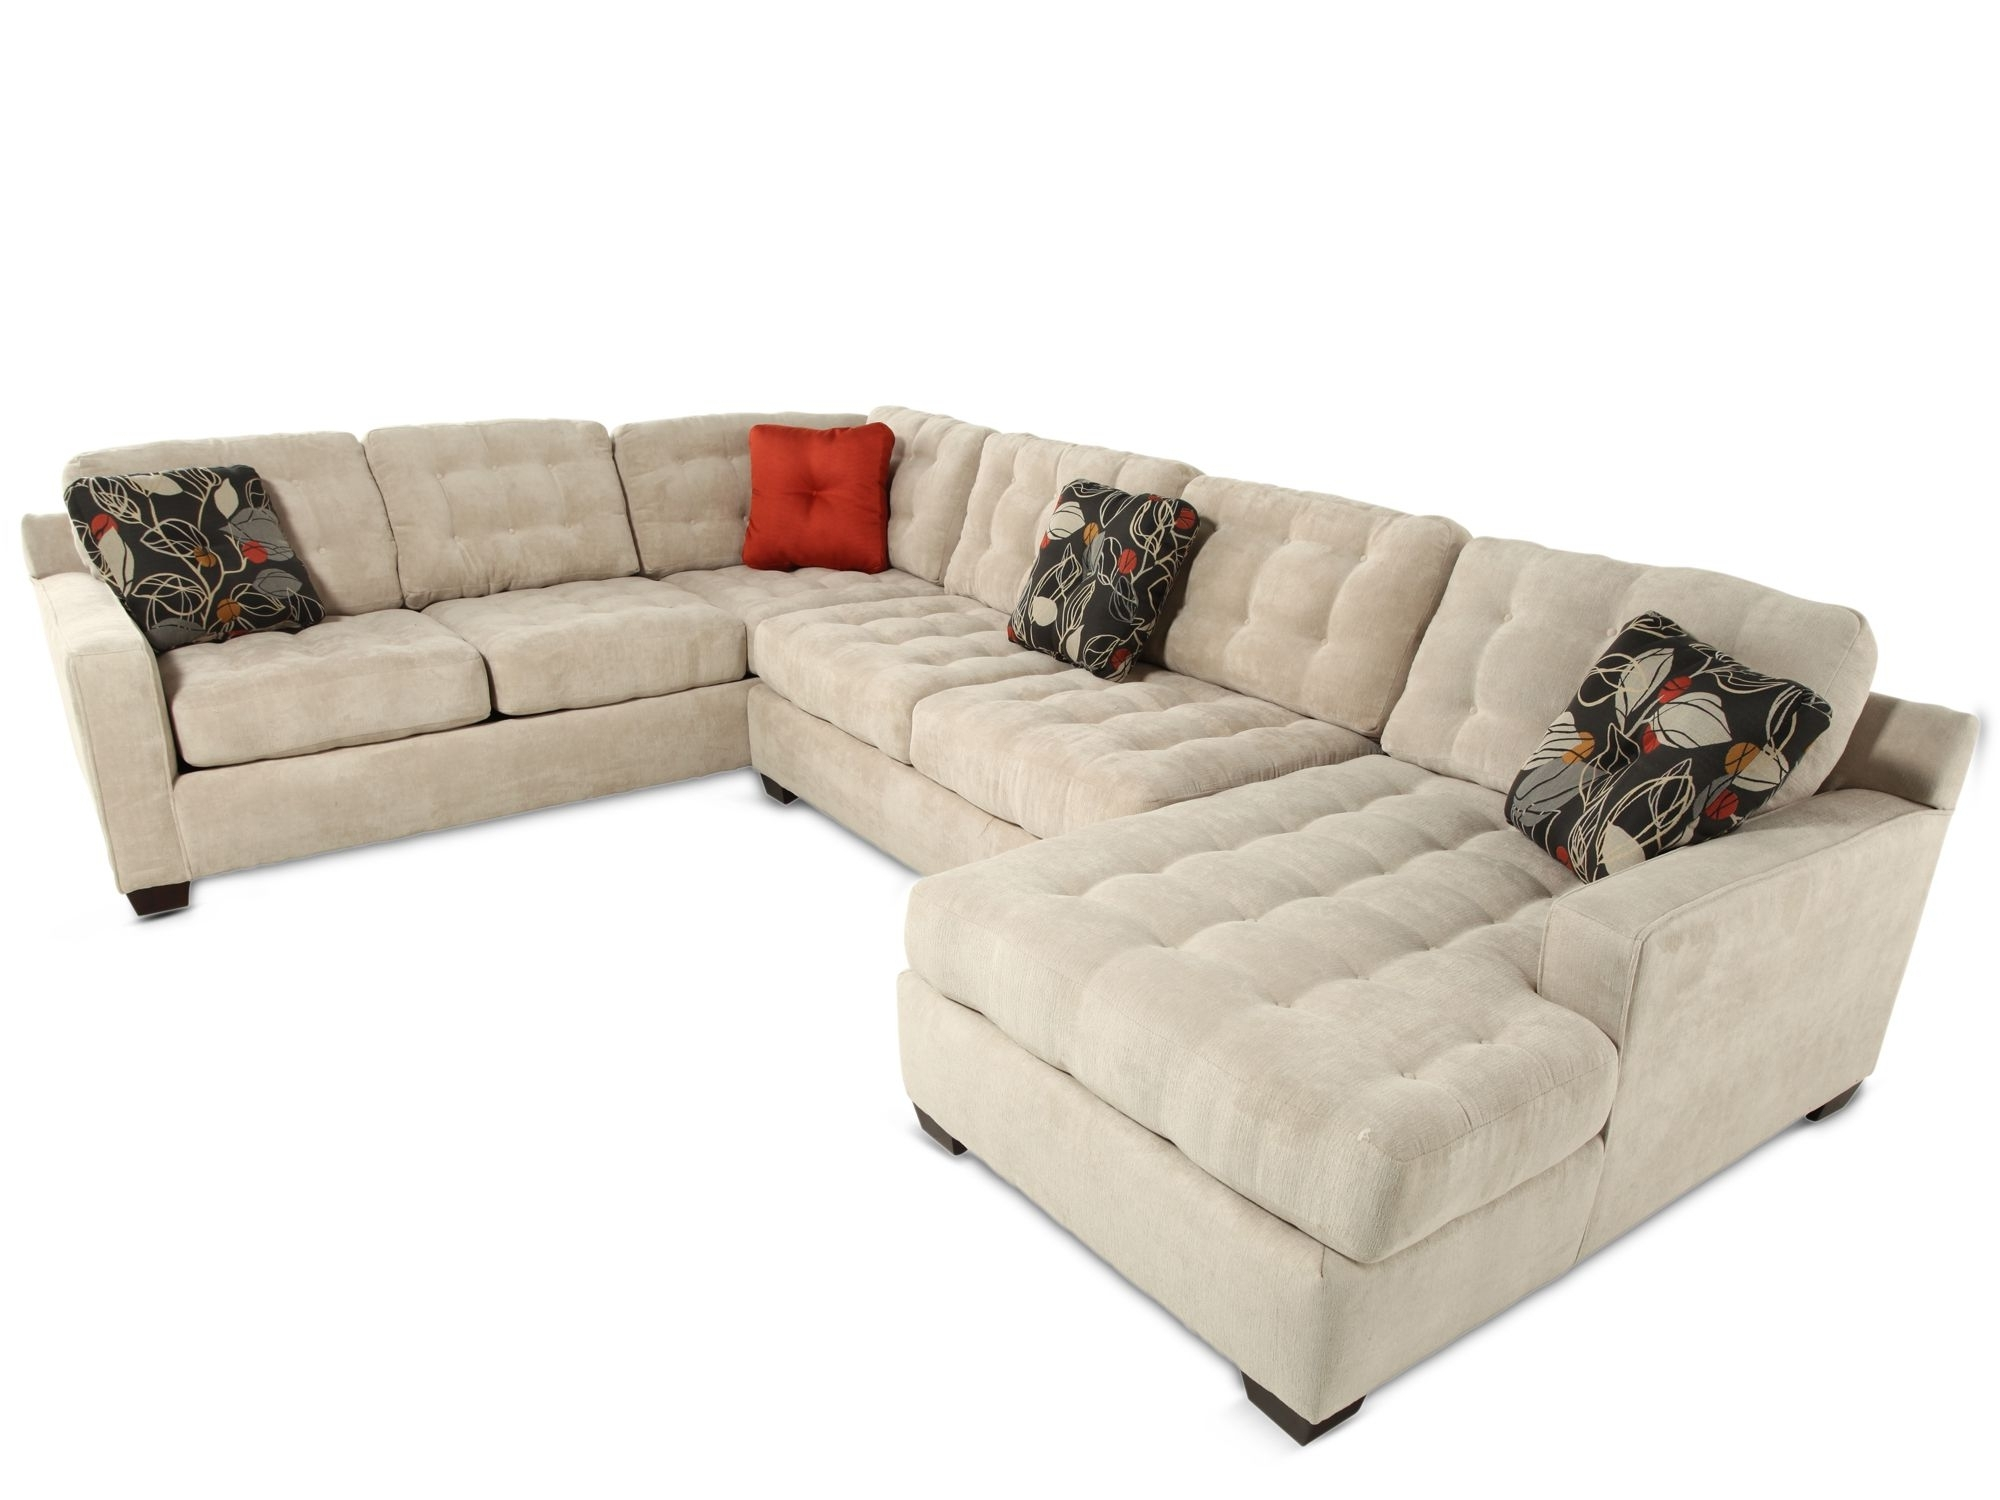 Widely Used Extraordinary Deep Seated Sofas Sectionals 33 In Sectional Sofas Regarding Mathis Brothers Sectional Sofas (View 13 of 20)